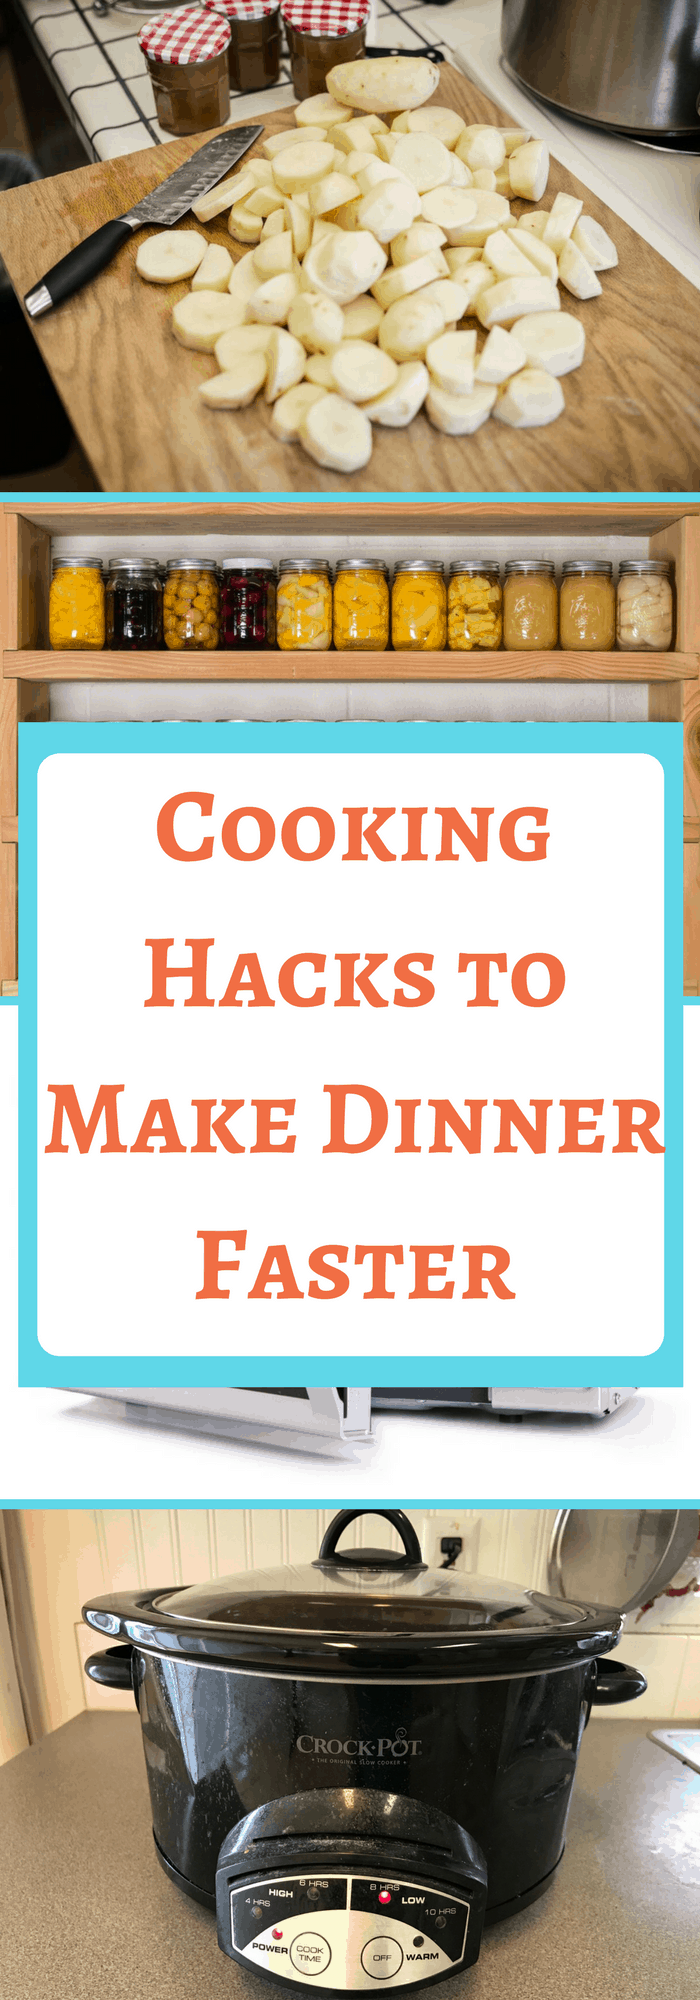 Quick cooking hacks to make dinner faster